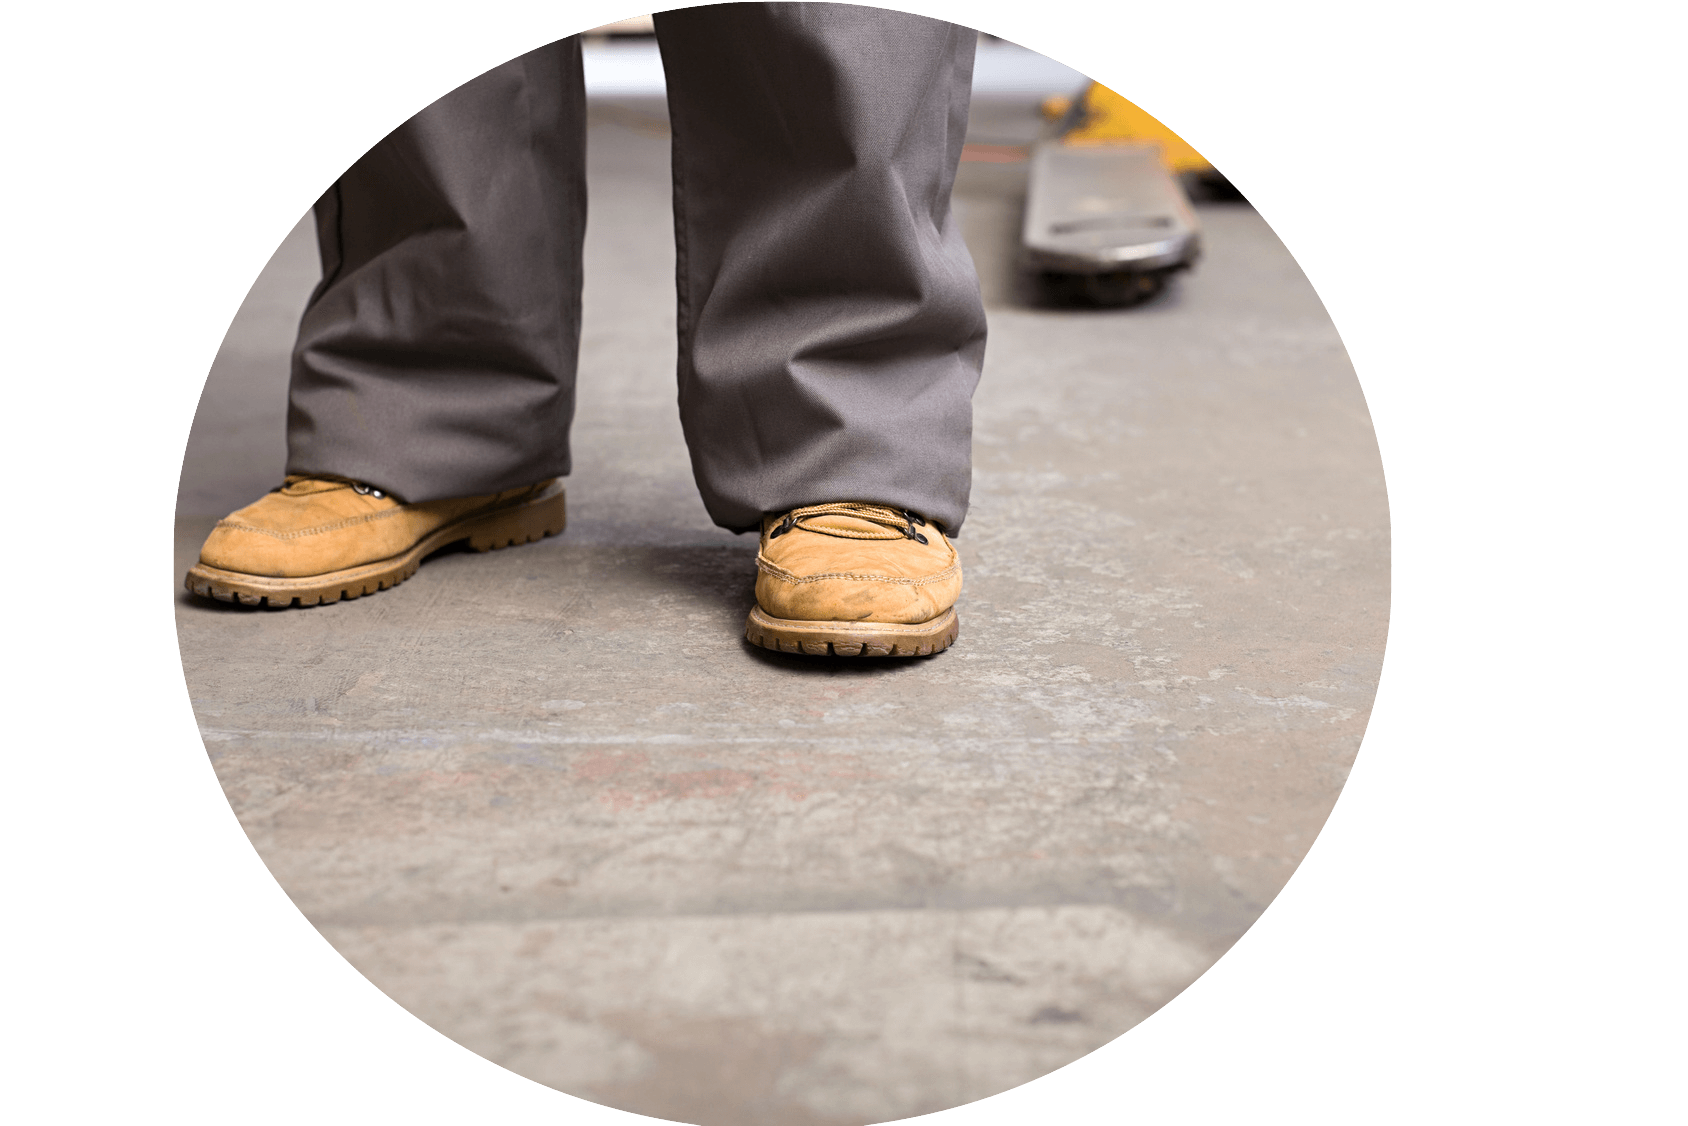 Best Walking Shoes For Warehouse Work